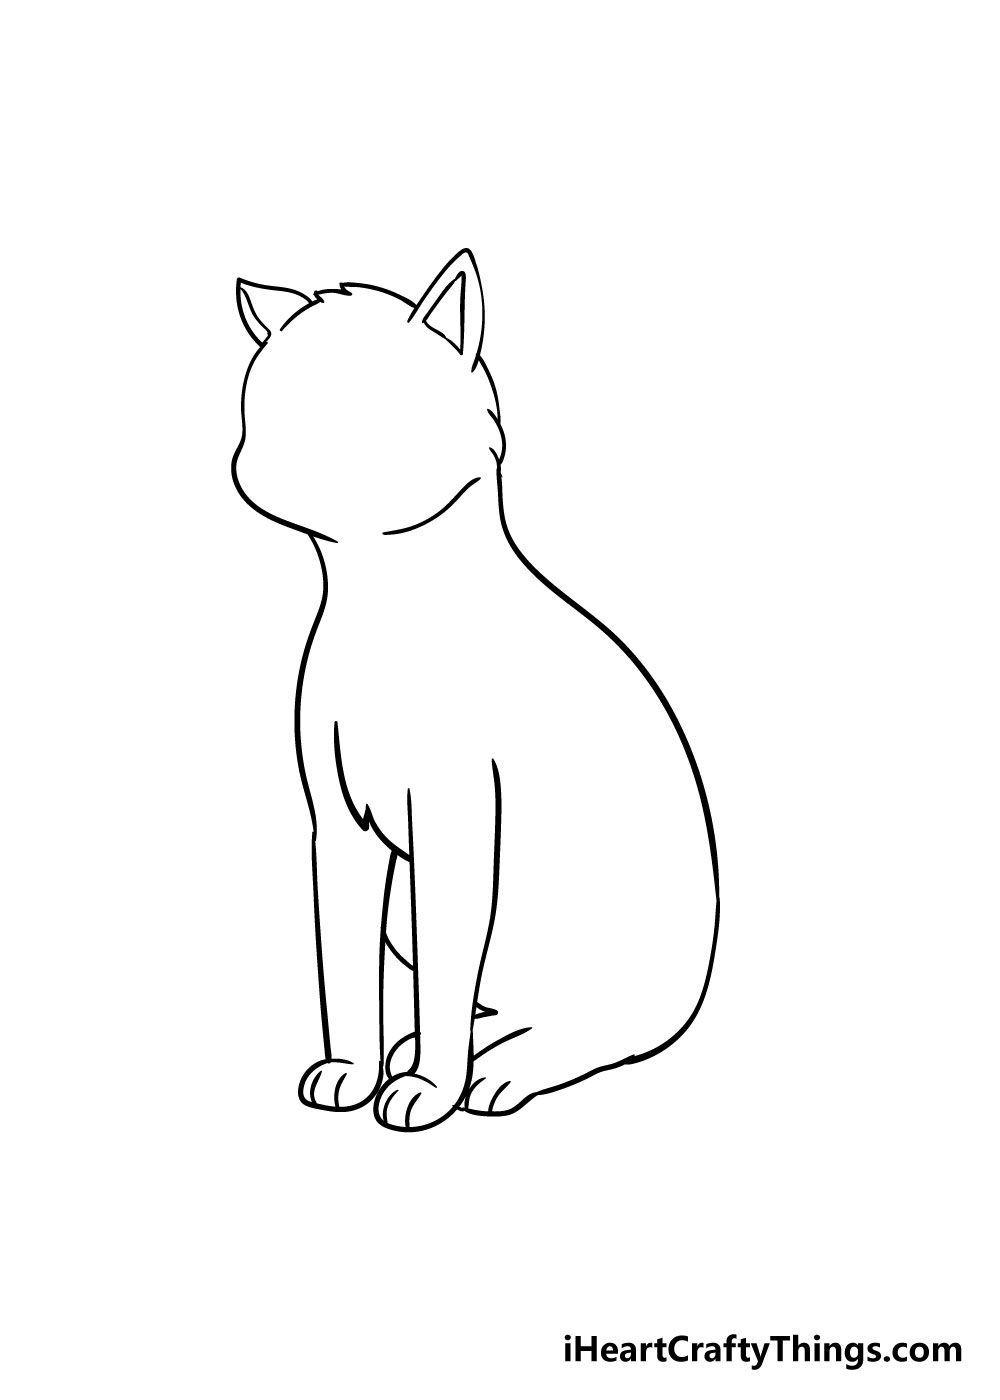 cat drawing step 6